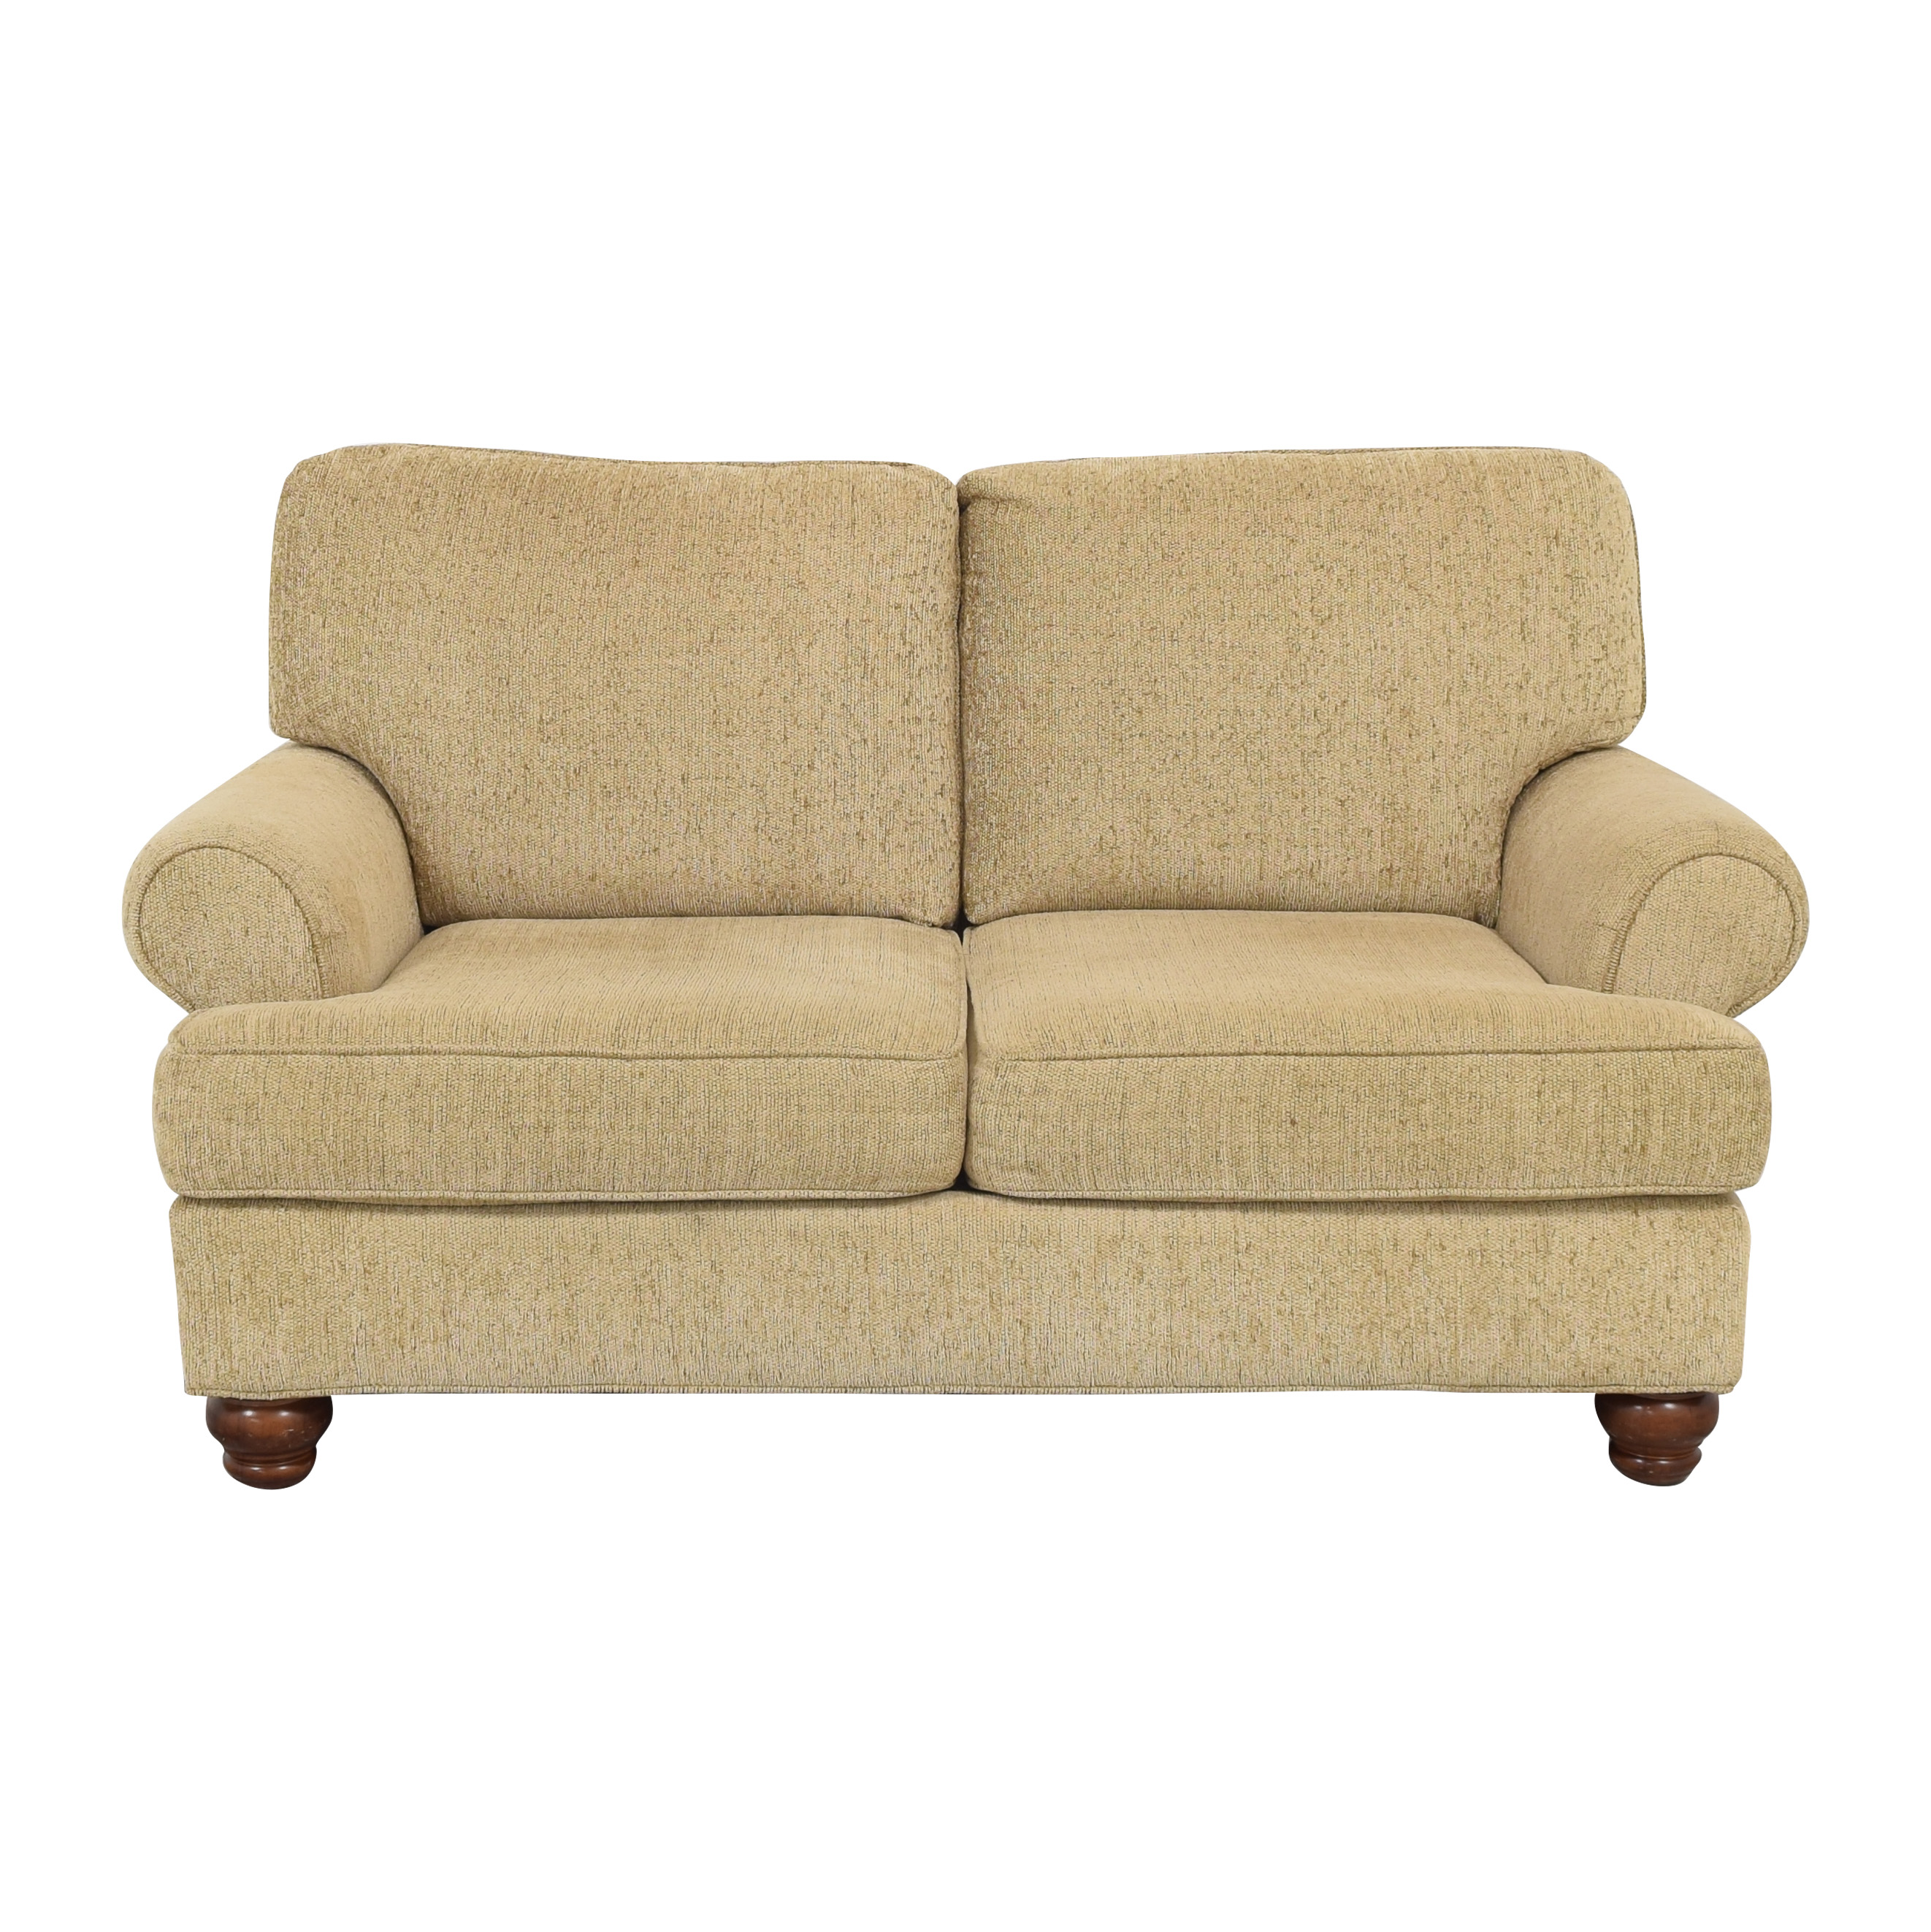 buy Emerald Craft Loveseat Emerald Home Furnishings Sofas